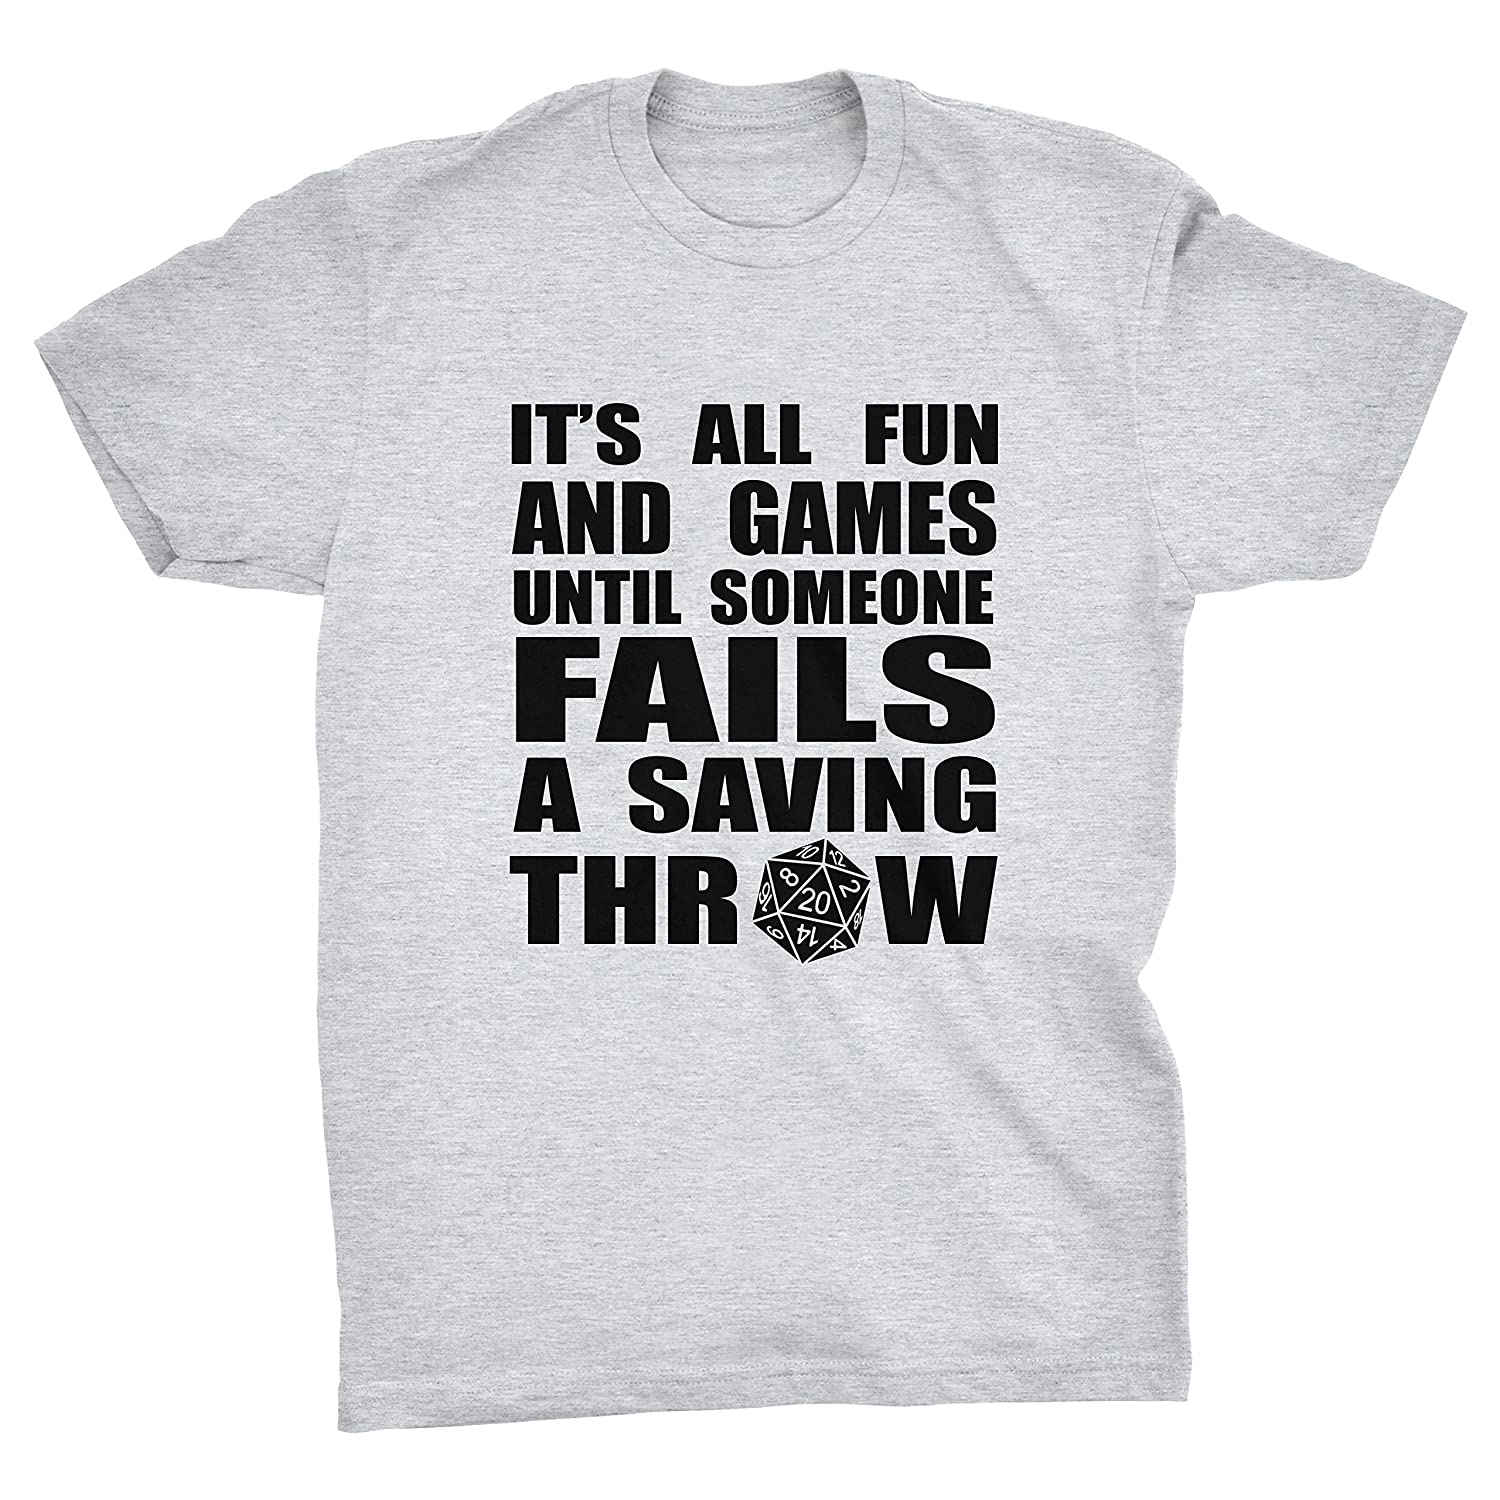 590afd33 Saving Throw D&D T-shirt hot sale 2017 - calumiteint.com